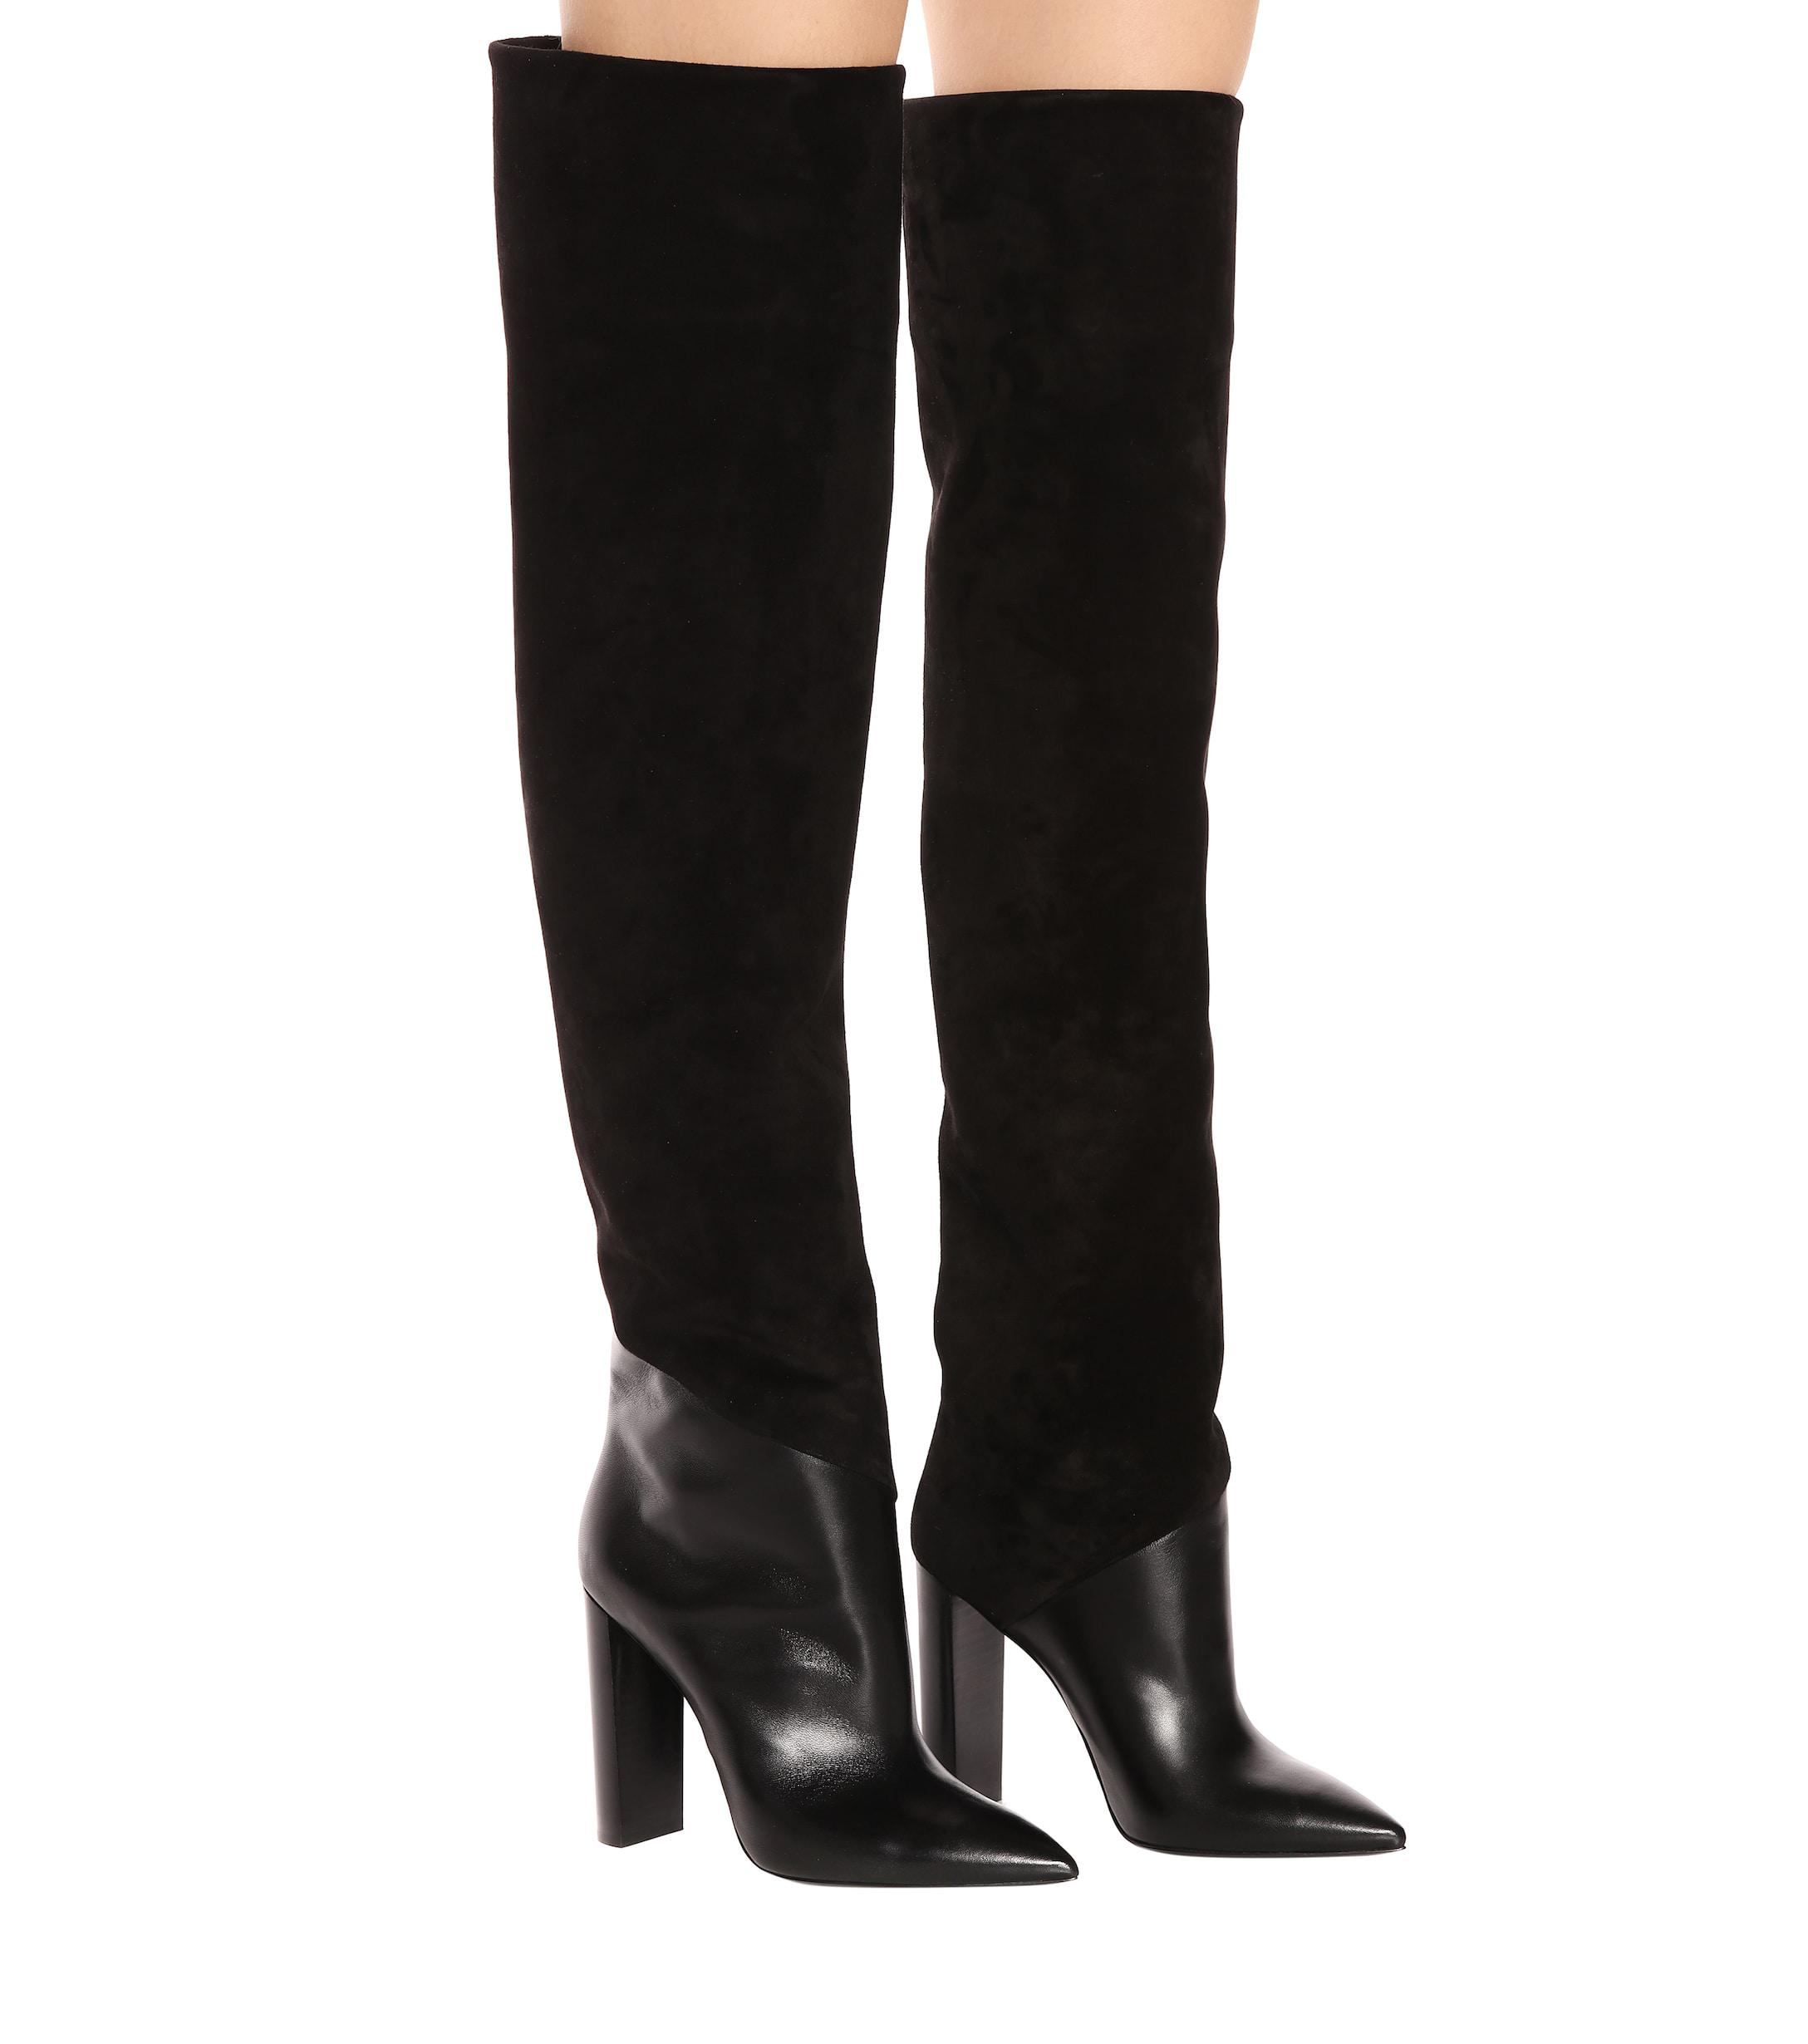 fde502c56e6 Saint Laurent - Black Tanger 105 Leather And Suede Over-the-knee Boots -.  View fullscreen